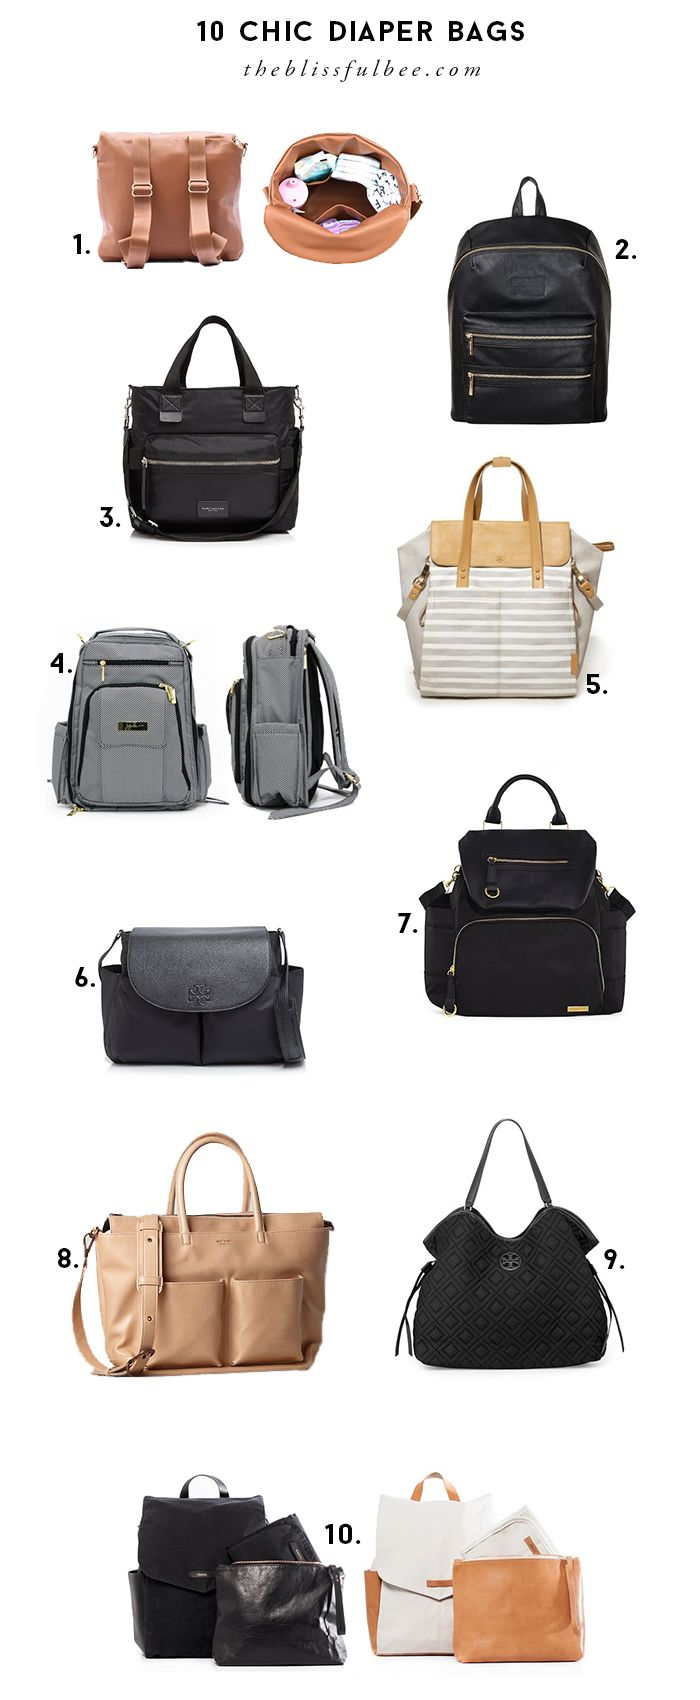 10 Chic (and practical) Diaper Bags | The Blissful Bee #diaperbag #babybag #baby